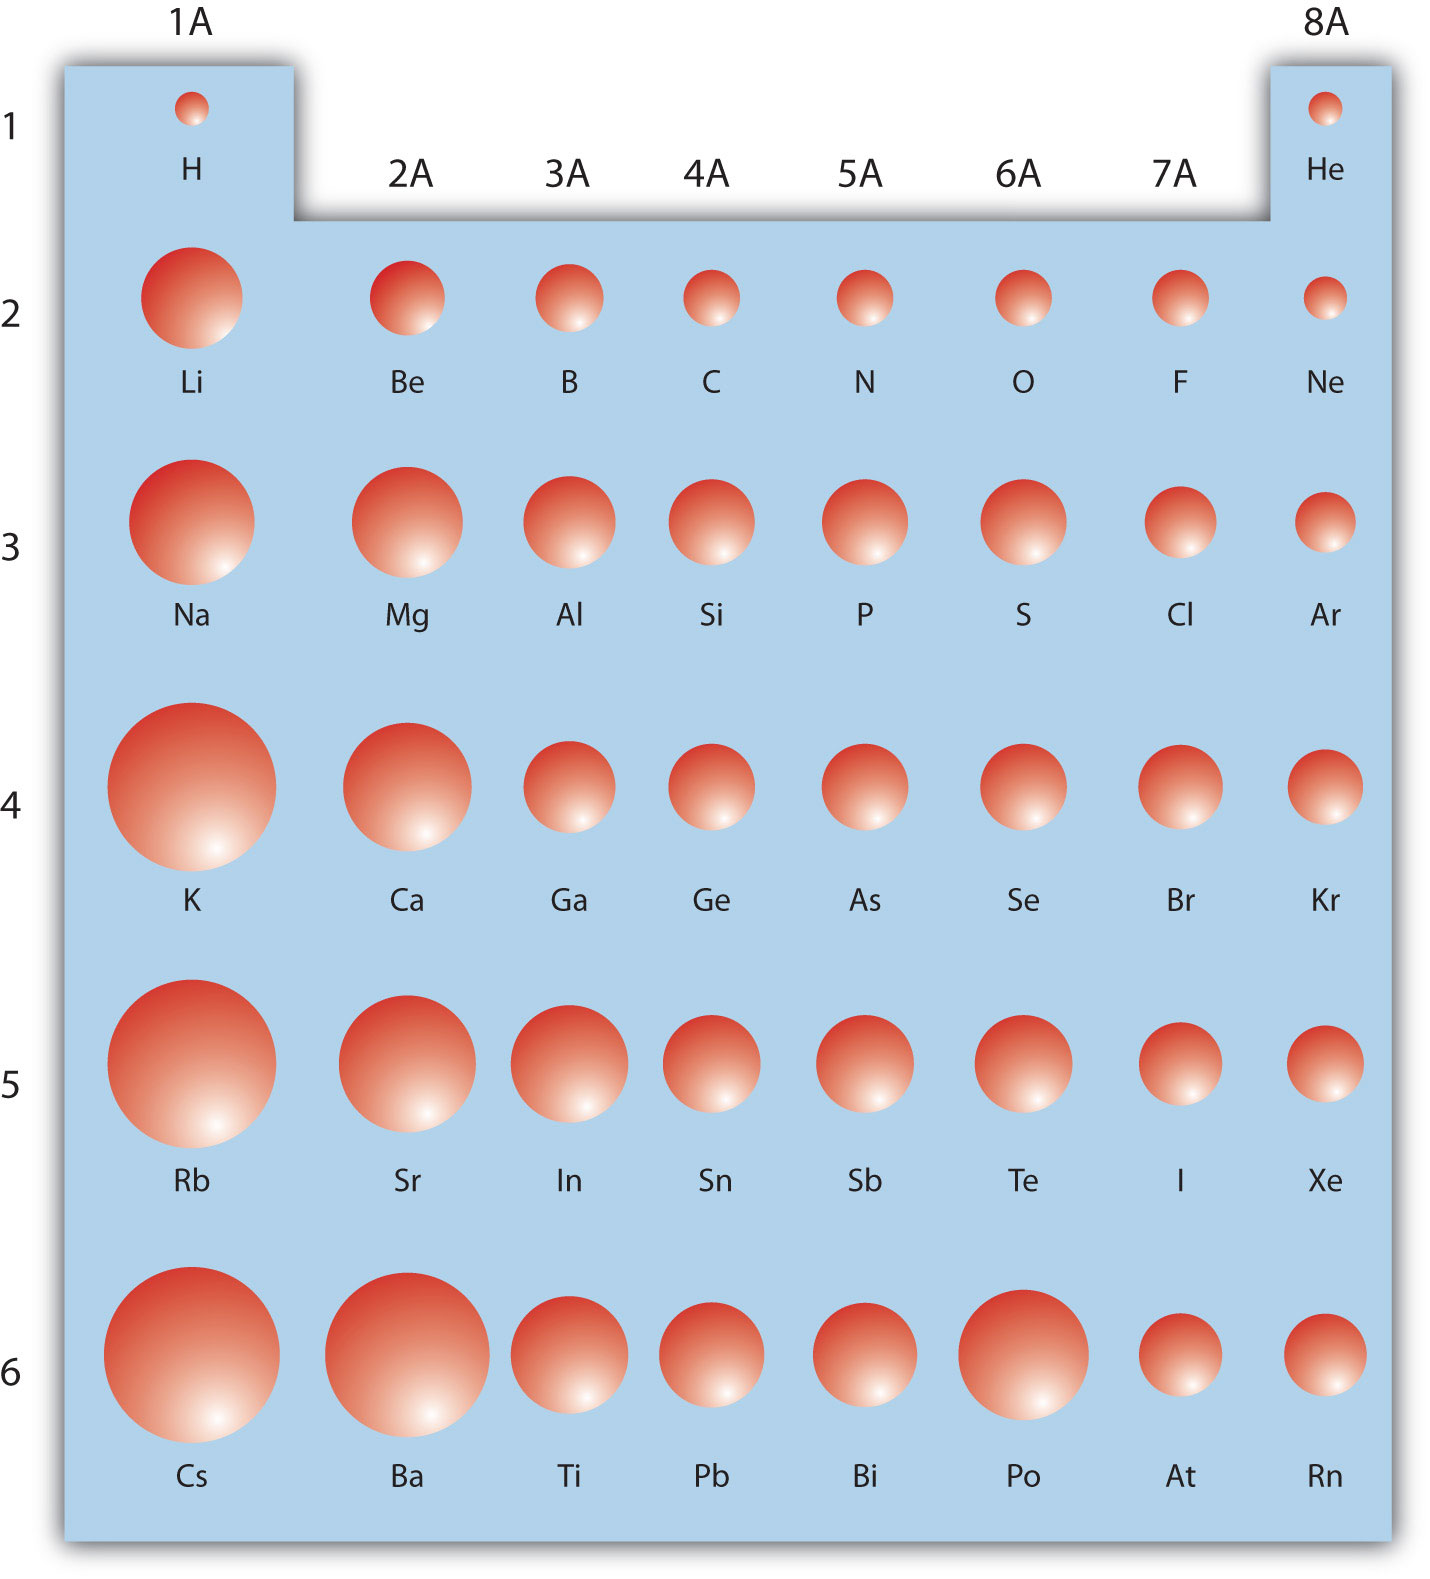 Elements atoms and the periodic table example 10 using the periodic table gamestrikefo Choice Image